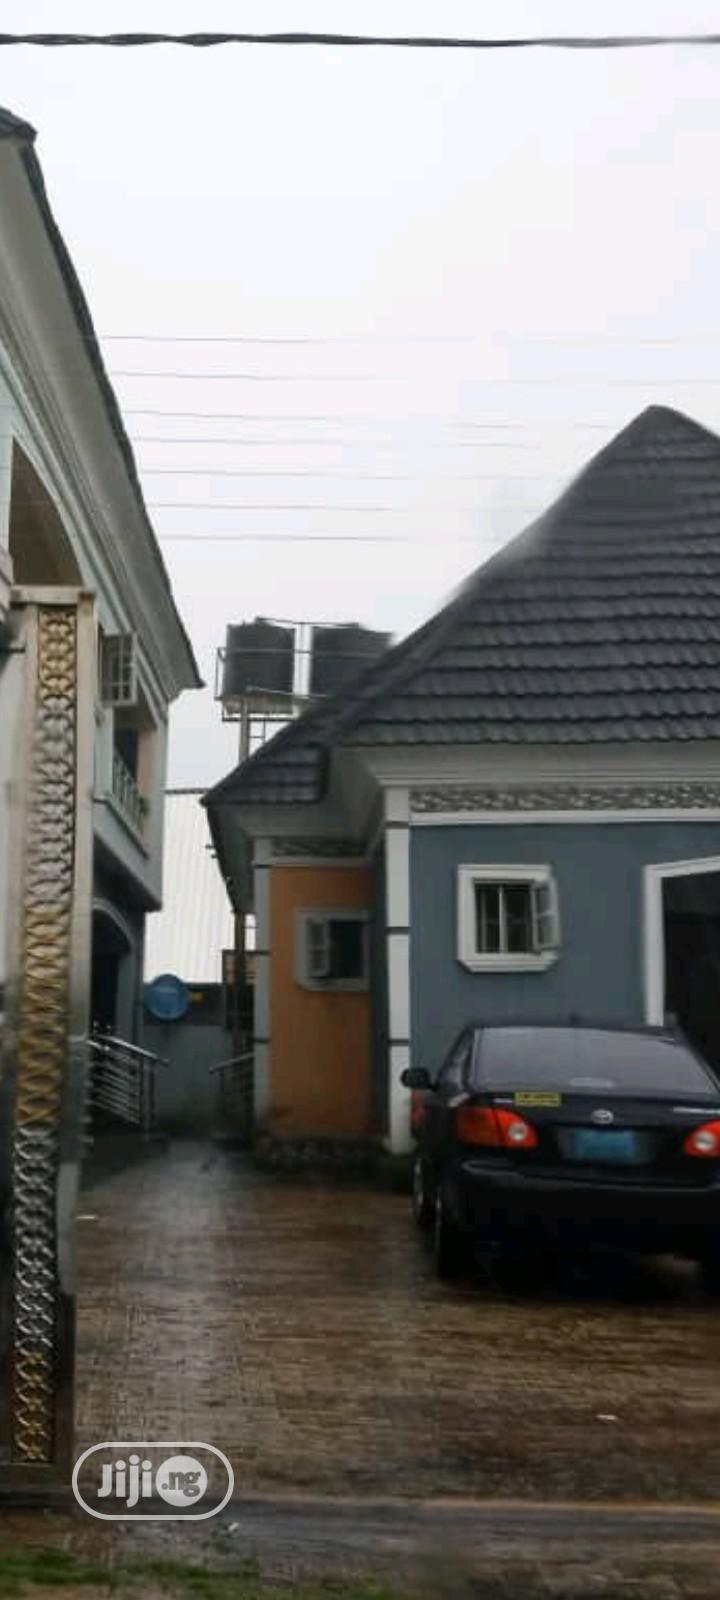 4flats of 3bedroom Flat With a Furnished Bungalow for Sale